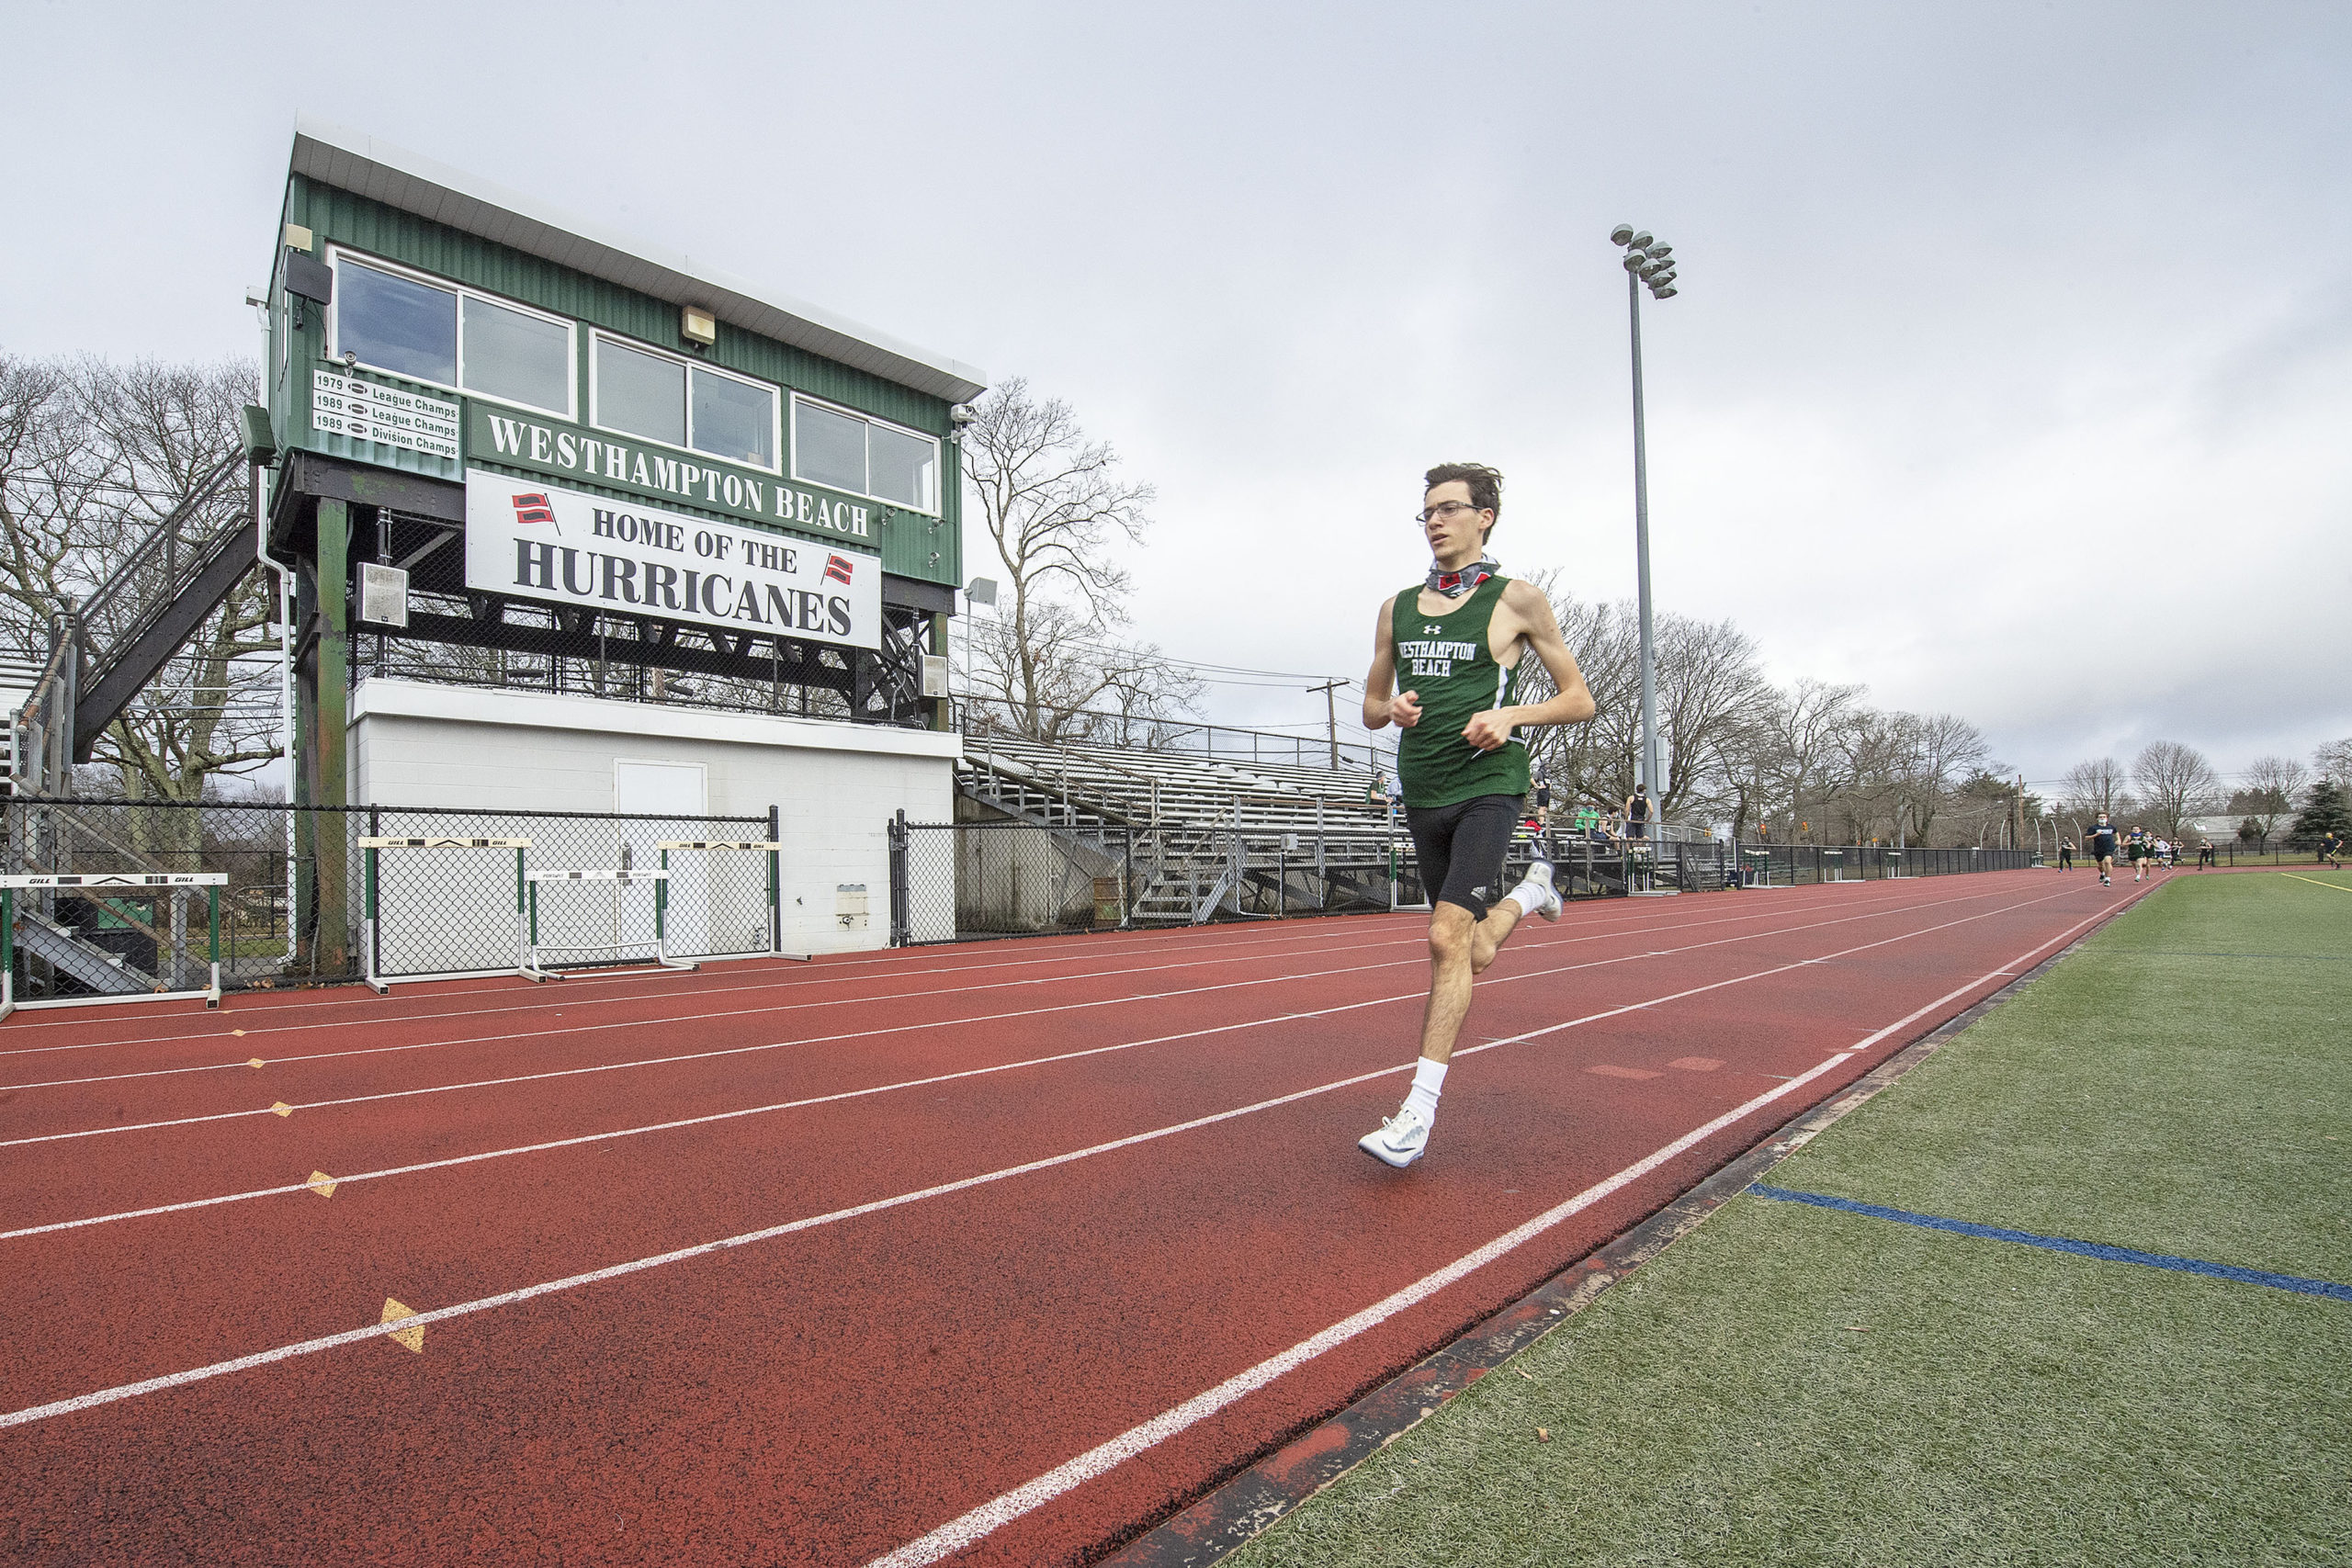 Gavin Ehlers leads the field by a large margin during the 1600 meter race as the Westhampton Beach boys track team competes against the team from Rocky Point at Westhampton Beach High School on Saturday.       MICHAEL HELLER